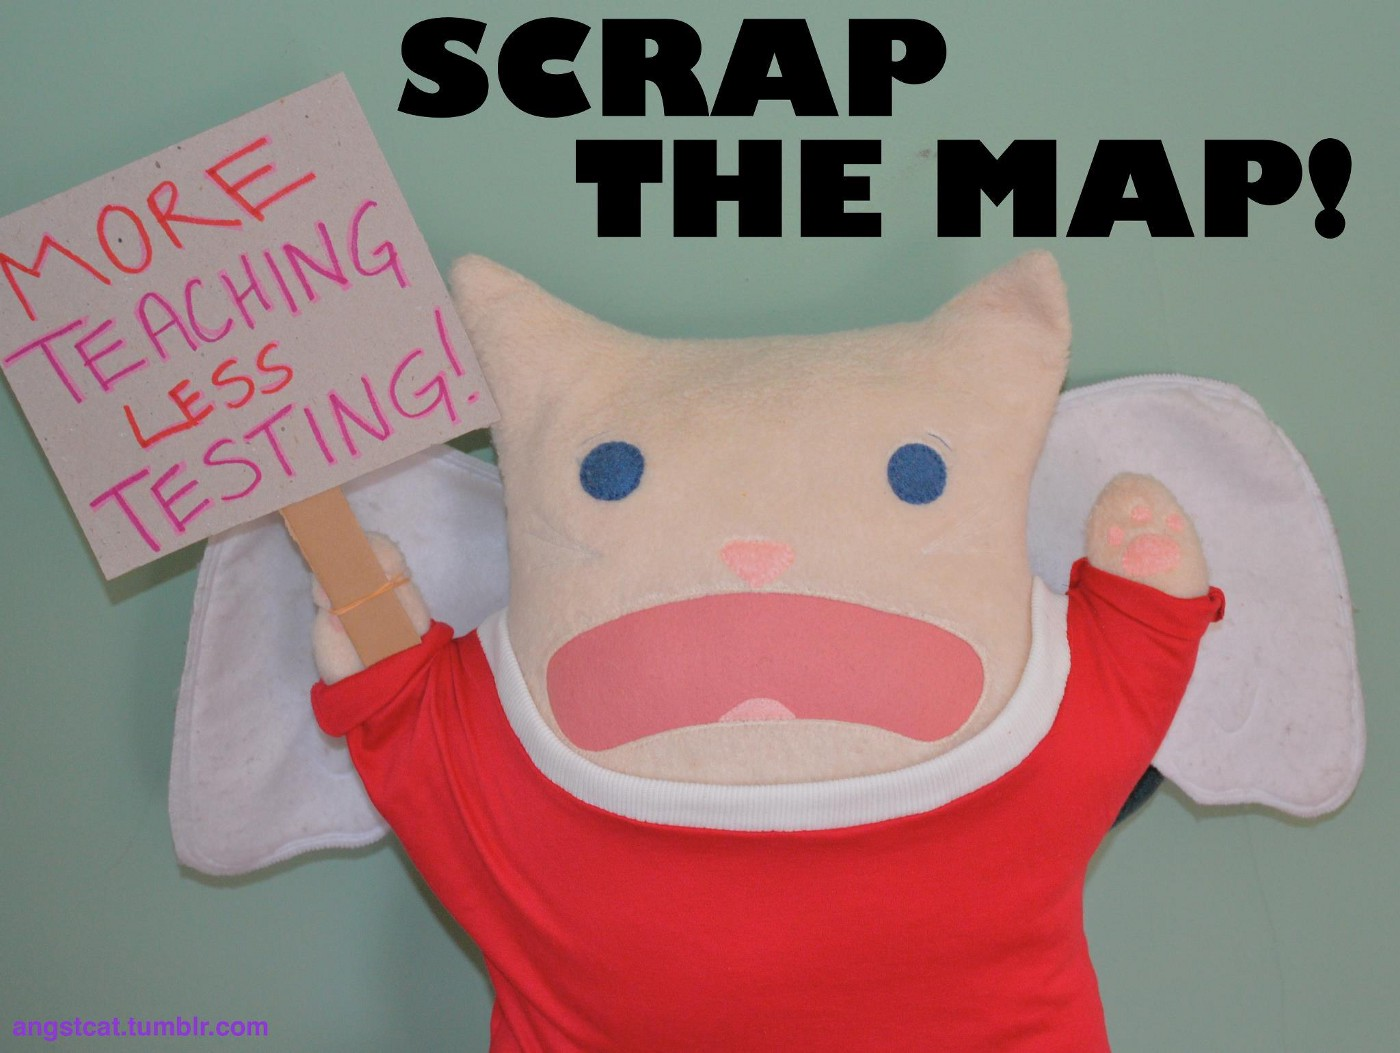 Scrap the MAP. More teaching. Less testing!